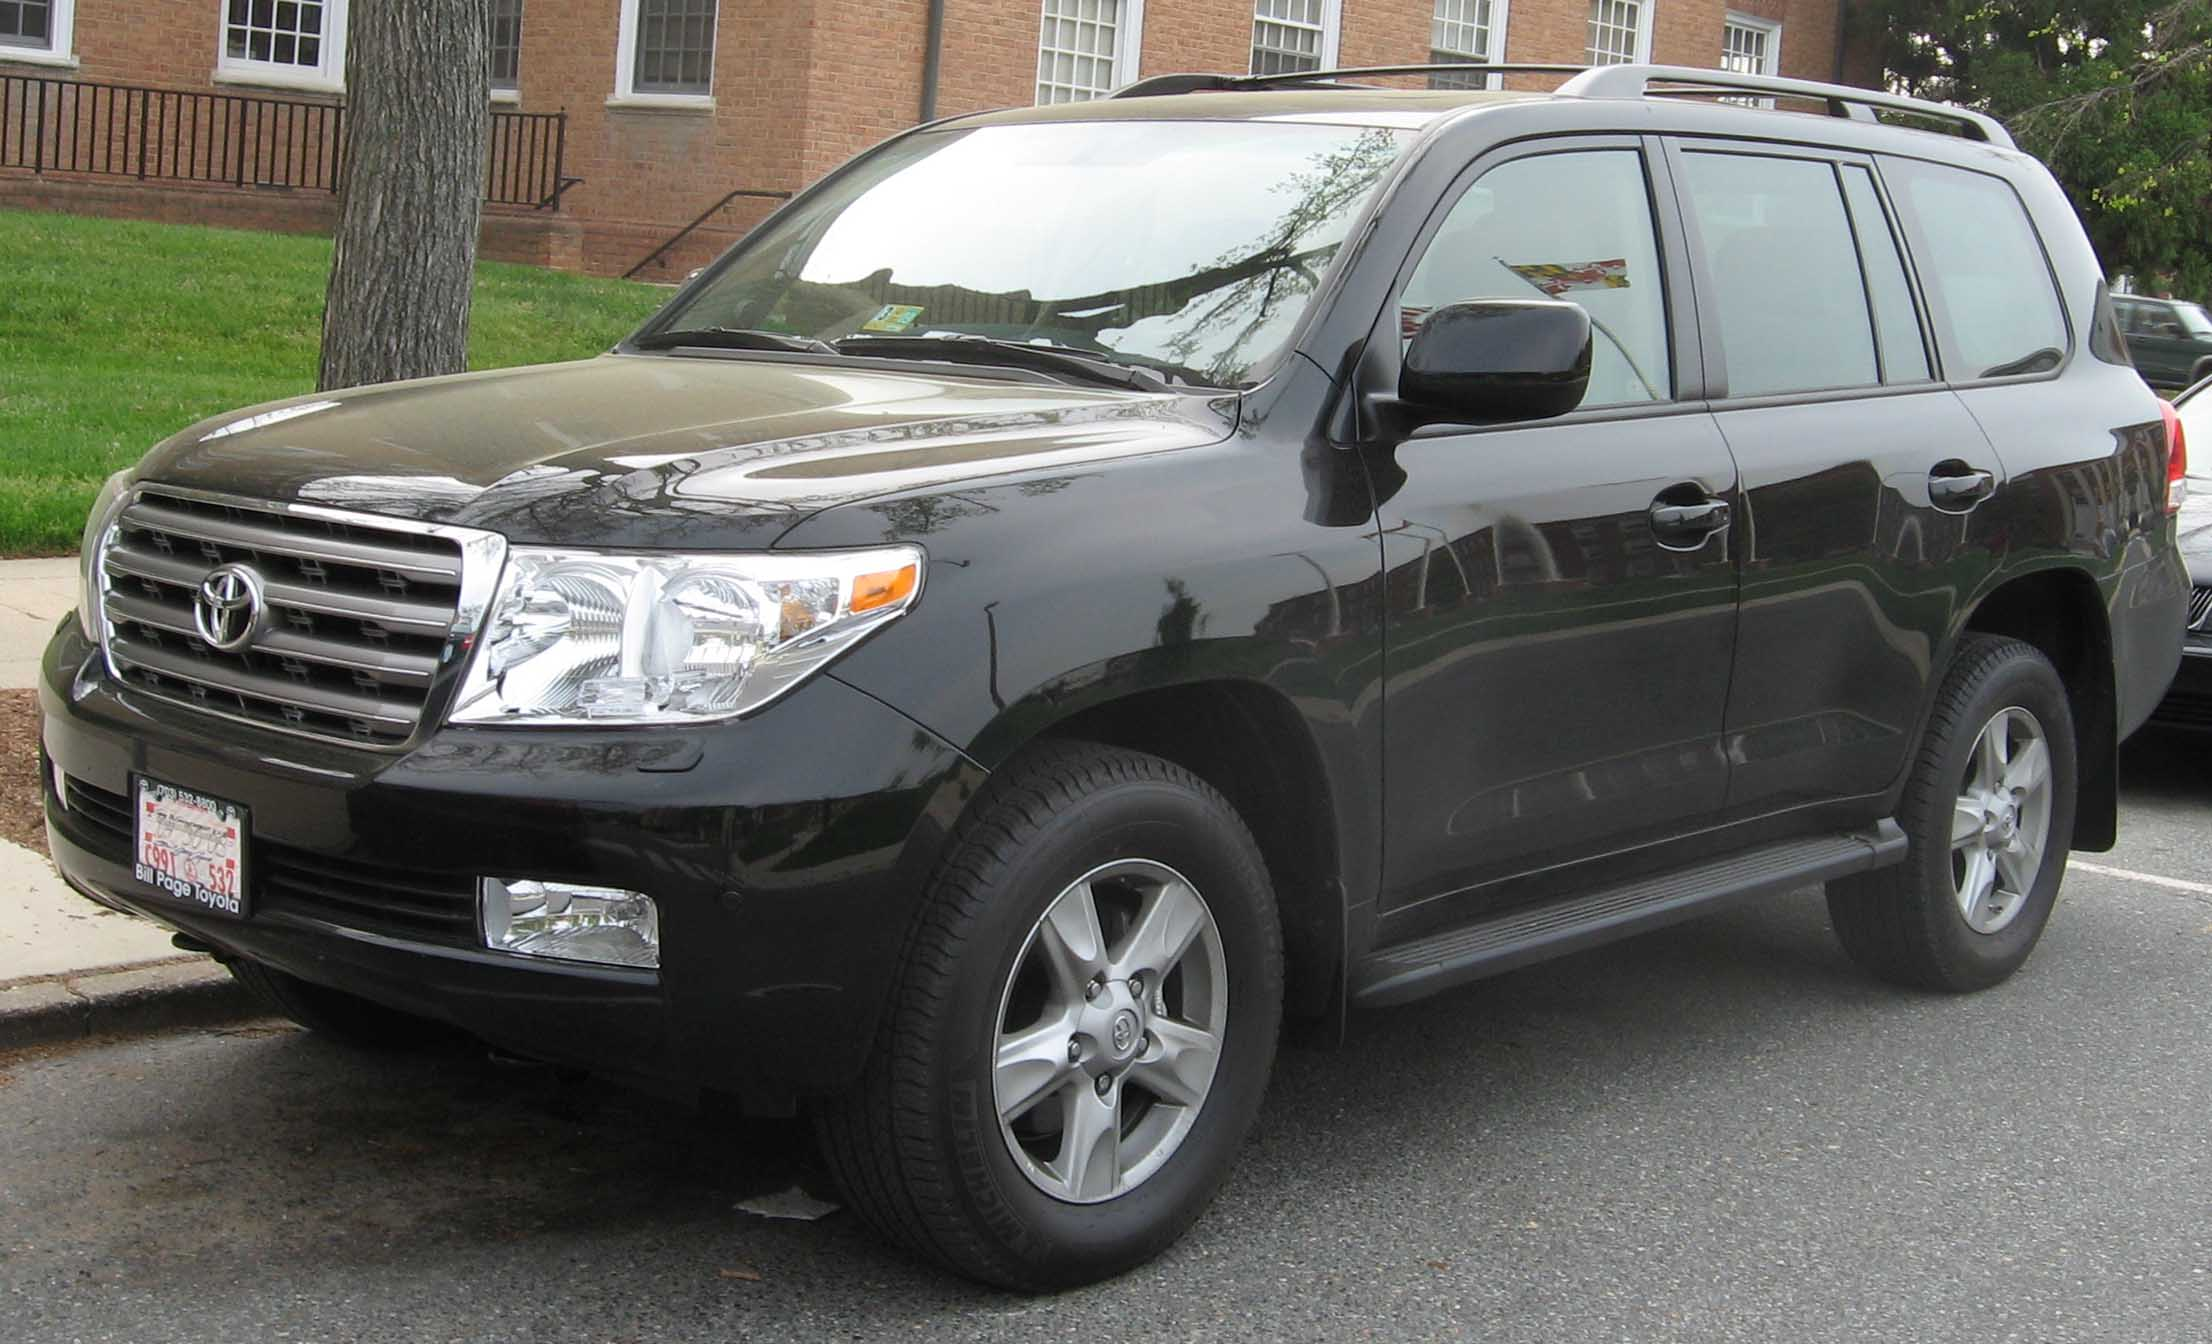 http://upload.wikimedia.org/wikipedia/commons/c/c1/2008_Toyota_Land_Cruiser.jpg